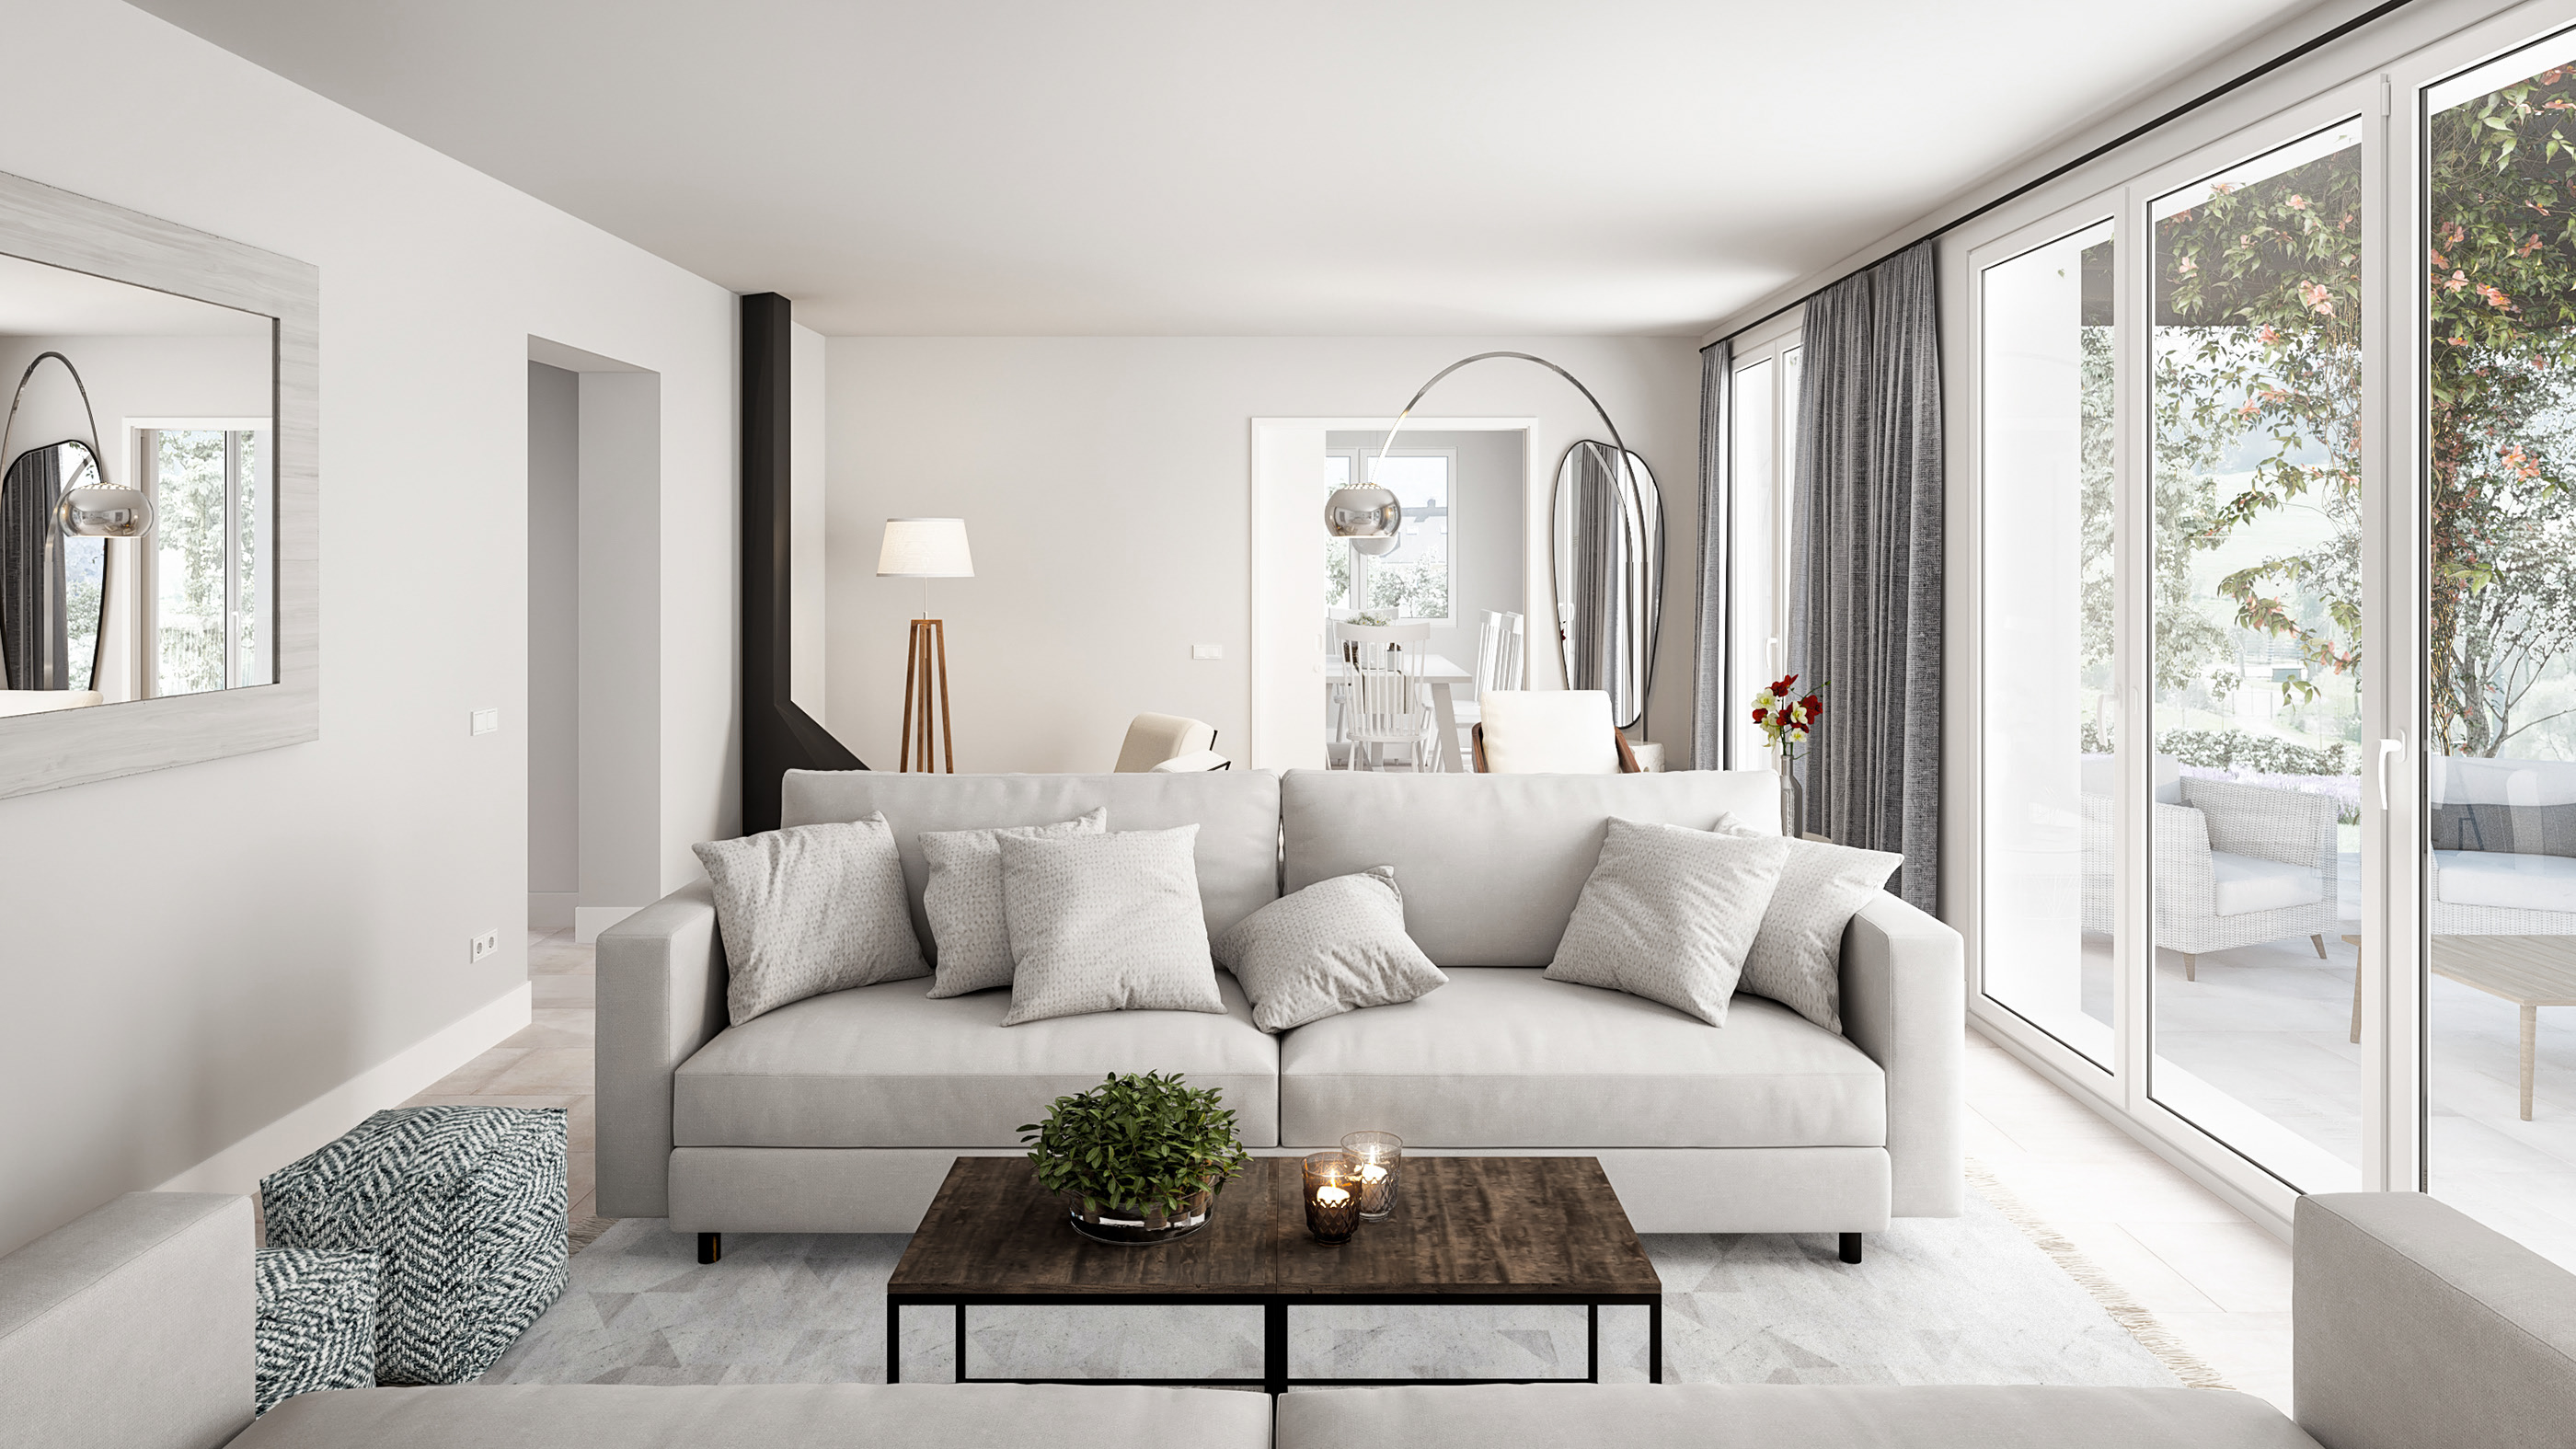 architectural visualization of a living room